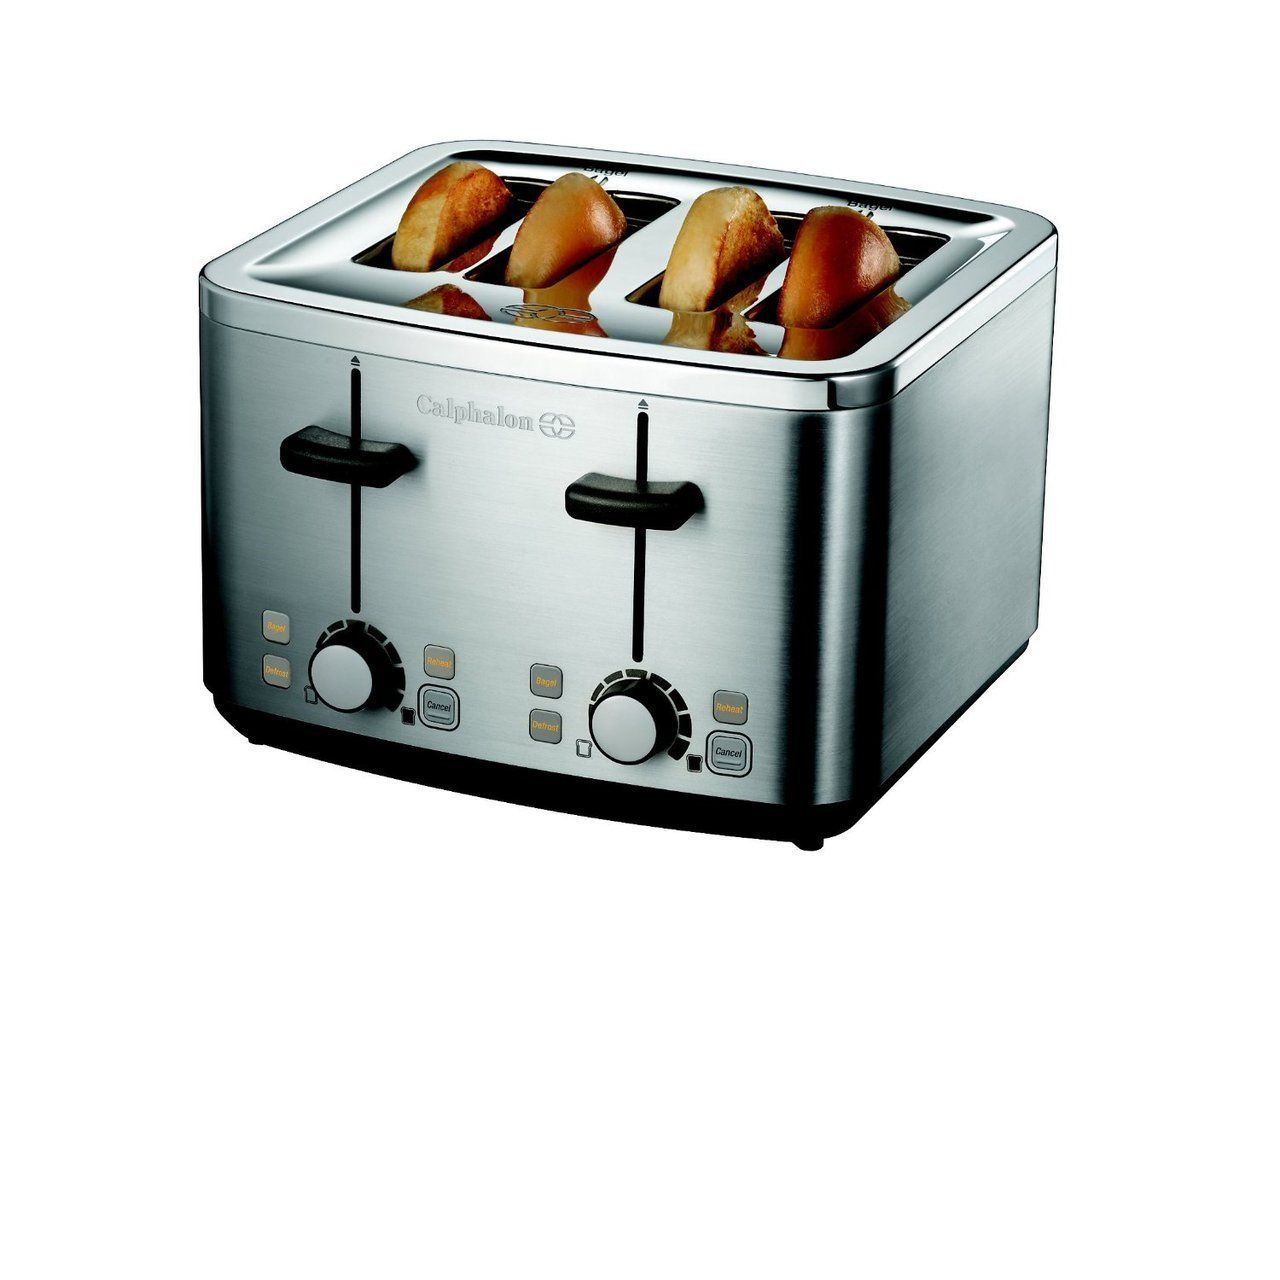 CALPHALON 4-Slot Toaster Stainless $69.95 OUT THE DOOR! PICK UP OR WE WILL SHIP FREE CULINART www.shopculinart.com